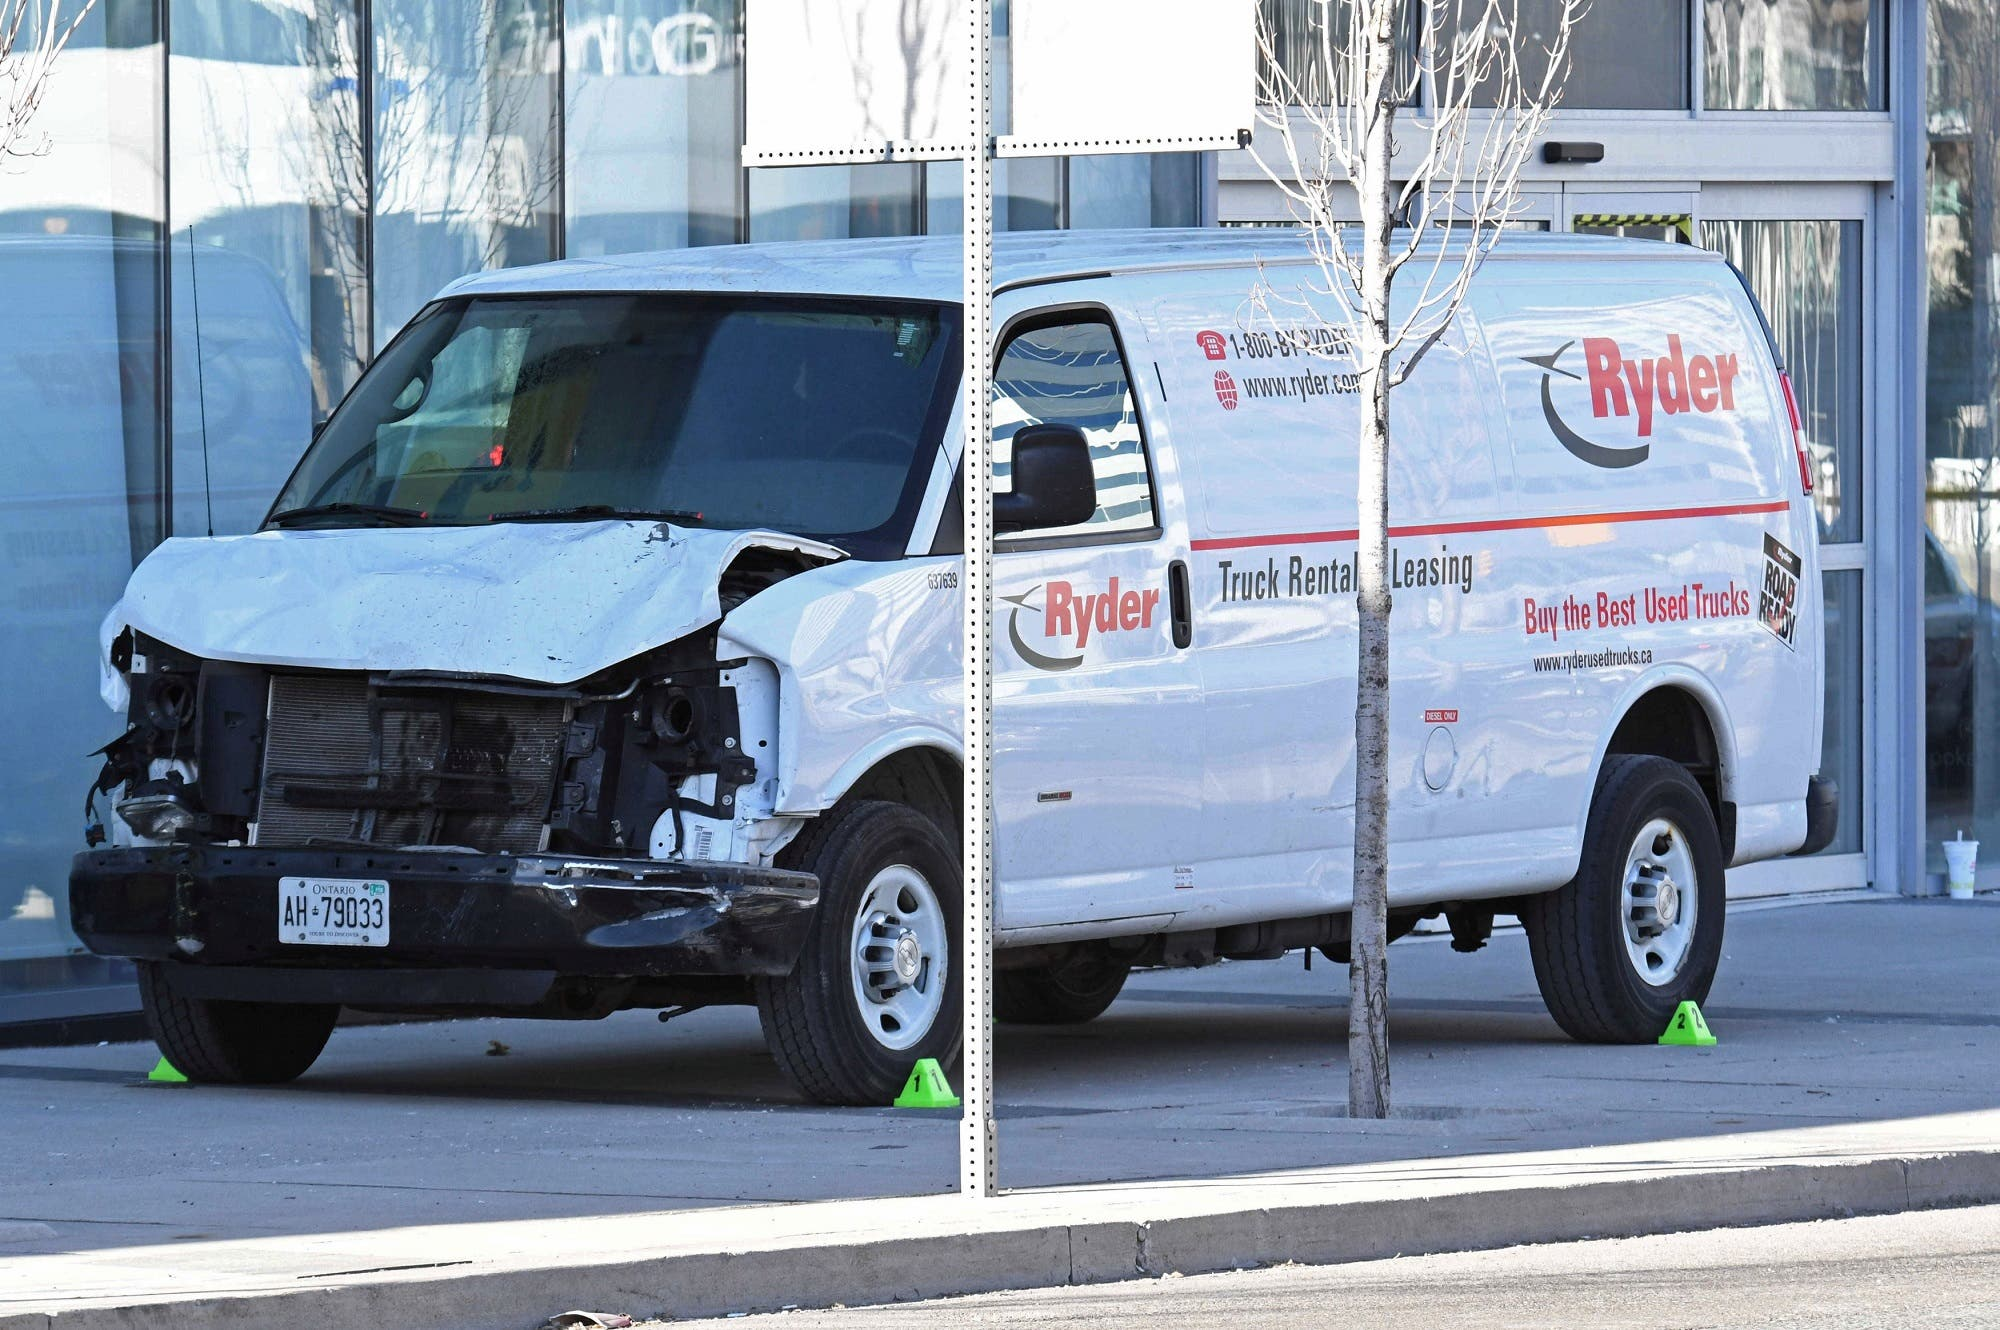 A damaged van seized by police is seen after multiple people were struck at a major intersection northern Toronto, Ontario, Canada, April 23, 2018. (Reuters)